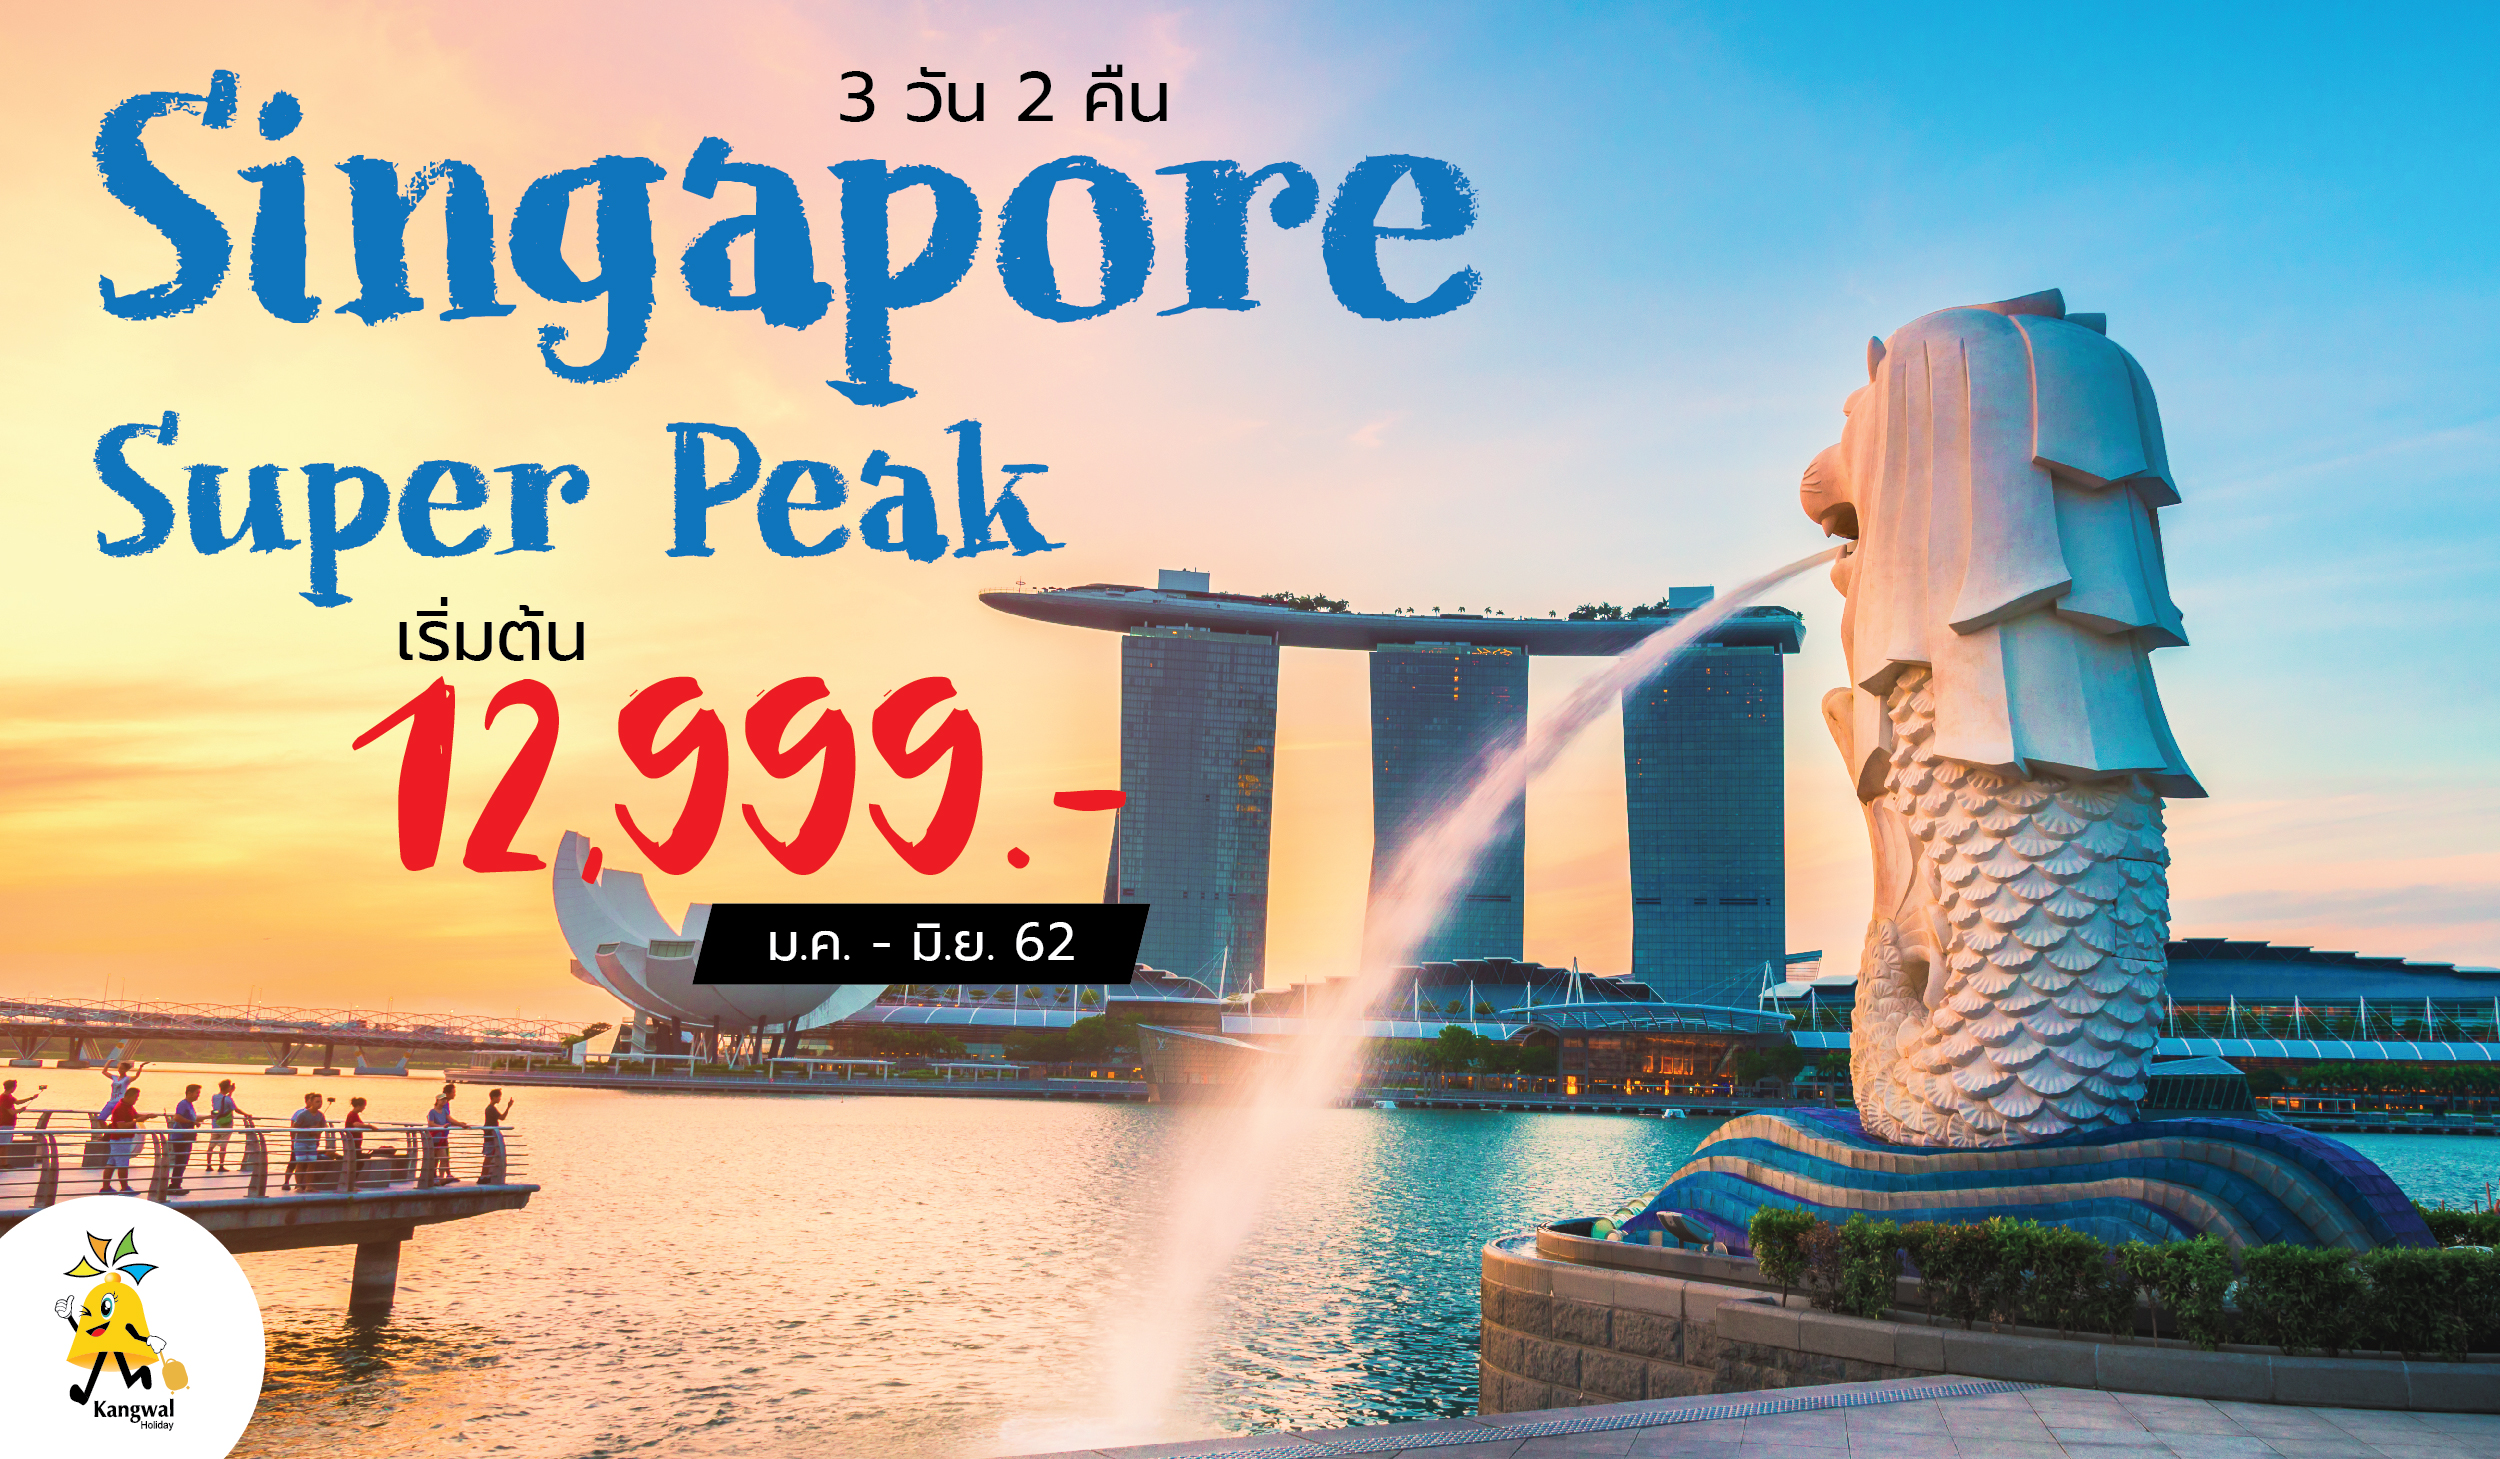 BZSIN01 SINGAPORE SUPER PEAK 3D2N BY SQ